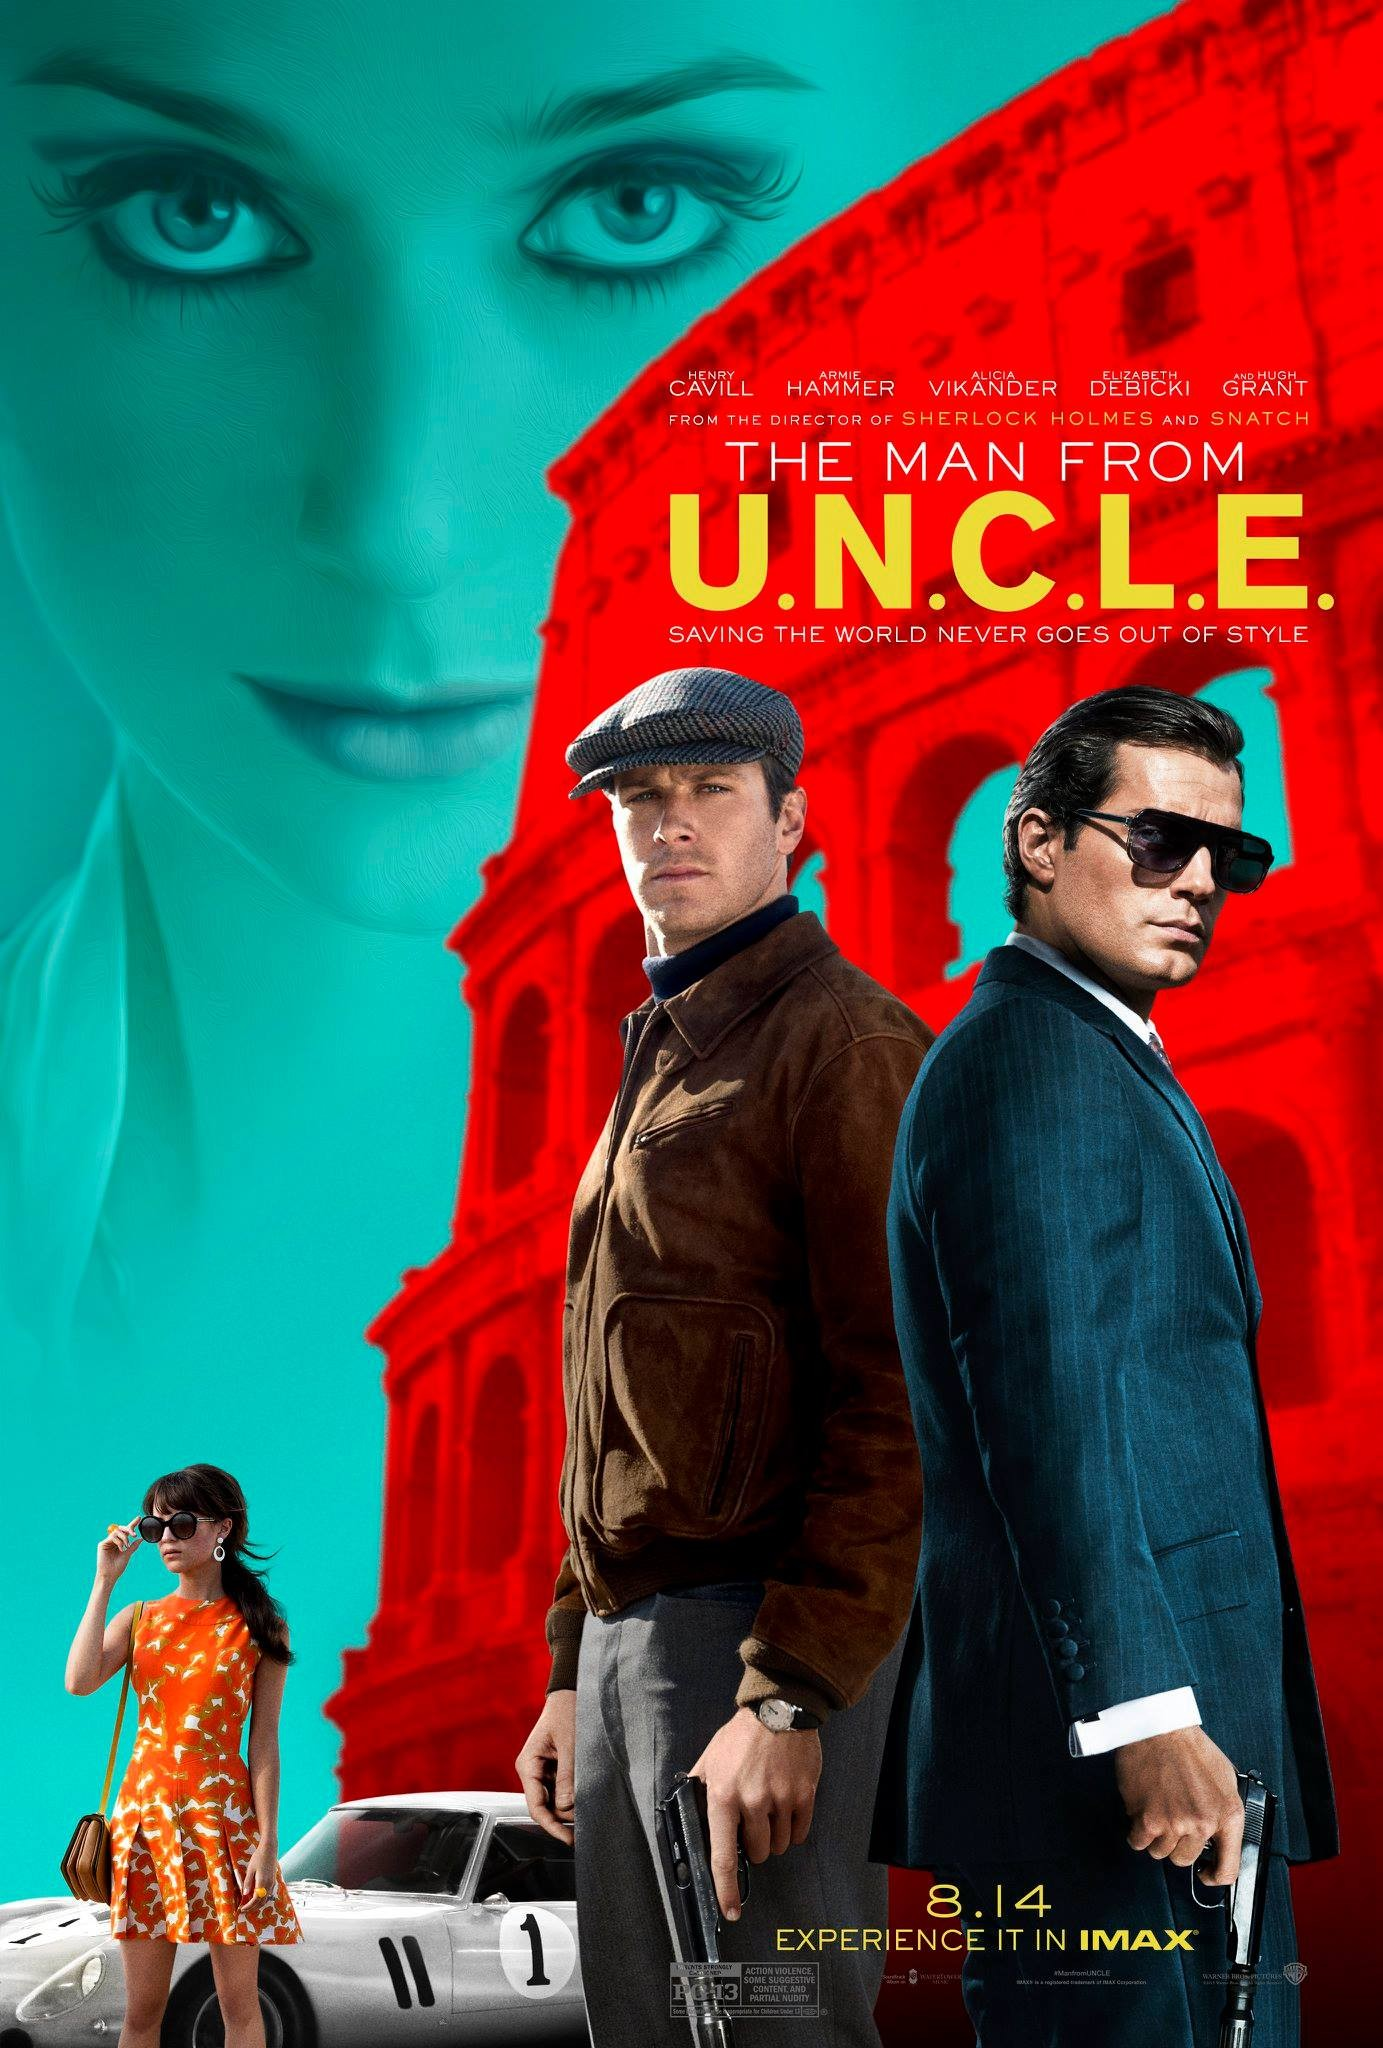 The Man from U.N.C.L.E.-Poster-11Junho2015